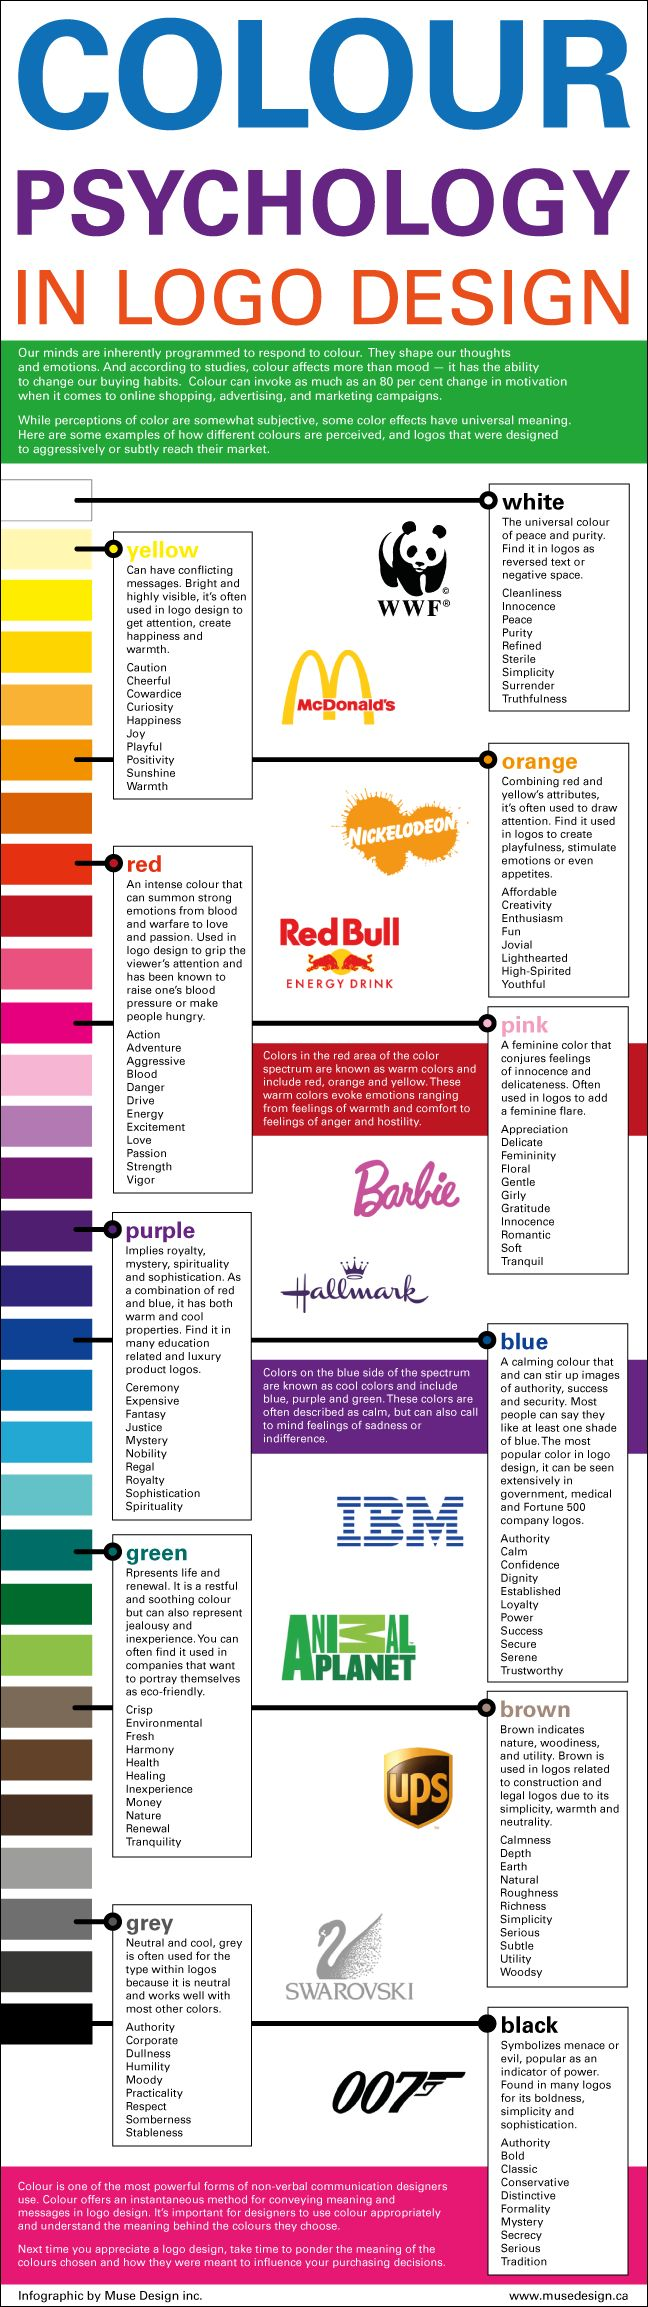 Colour Psychology in Logo Design [infographic]